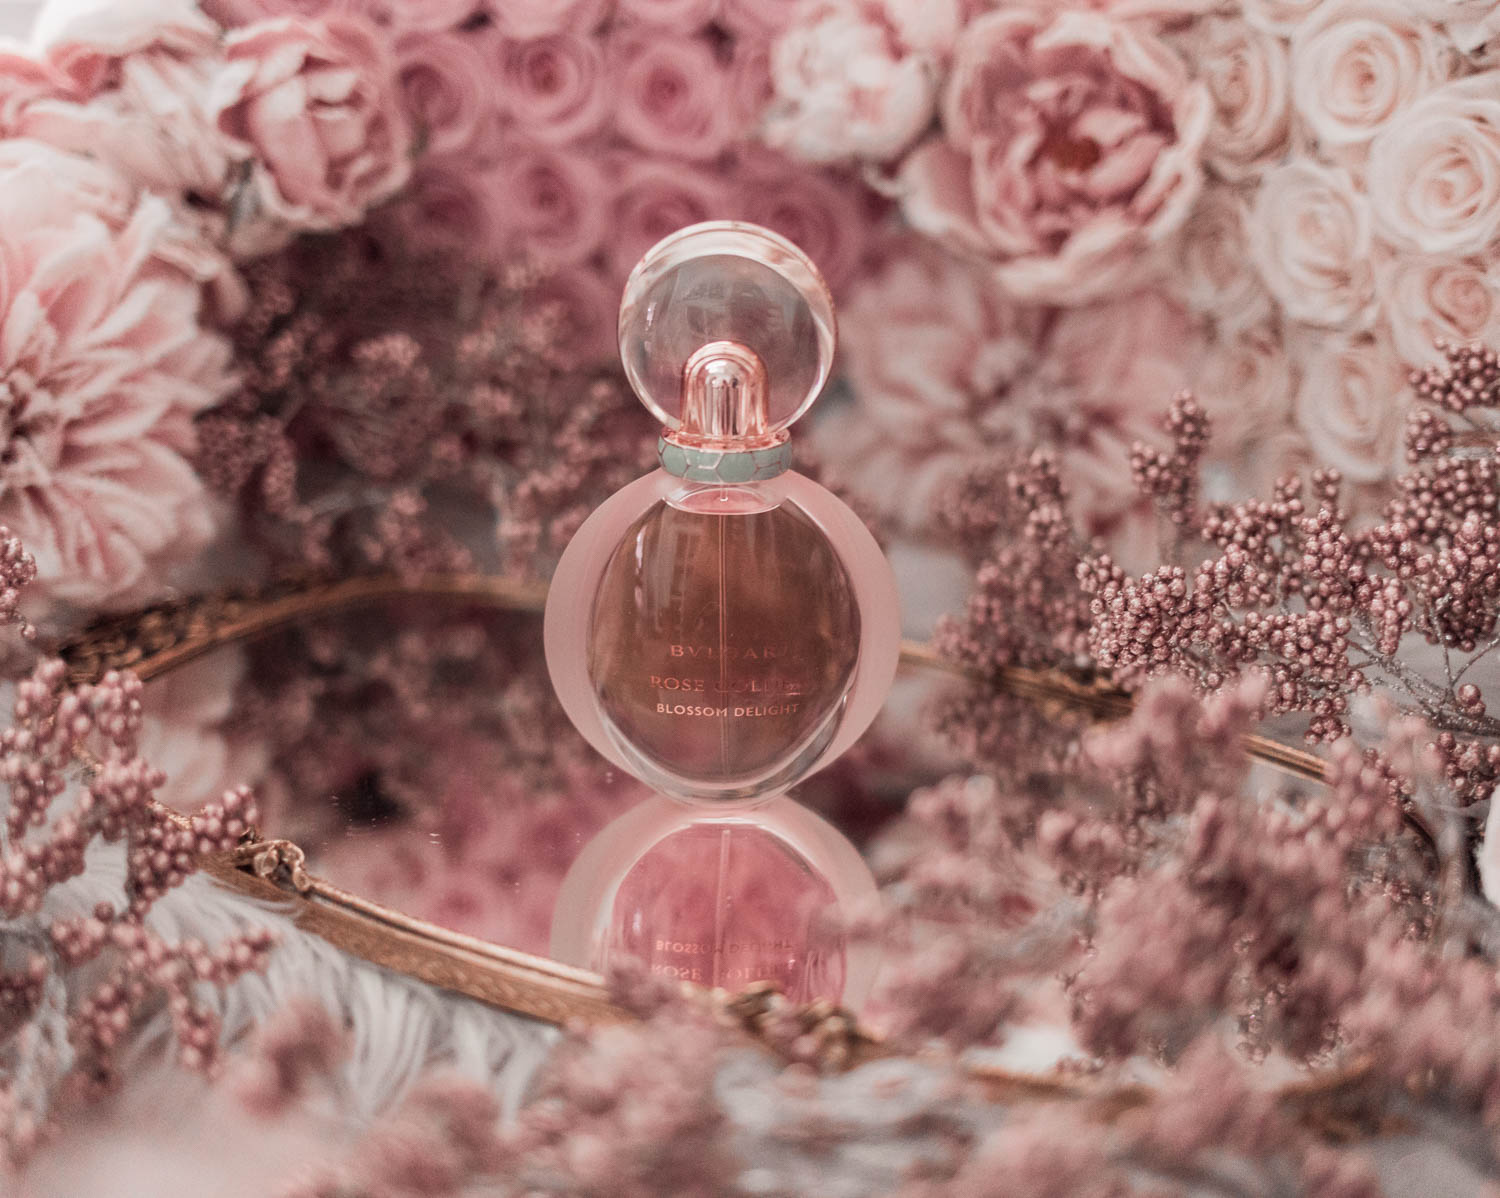 Feminine fashion blogger Elizabeth Hugen of Lizzie in Lace shares the best feminine perfumes and her girly fragrance collection including Bulgari Rose Goldea Blossom Delight